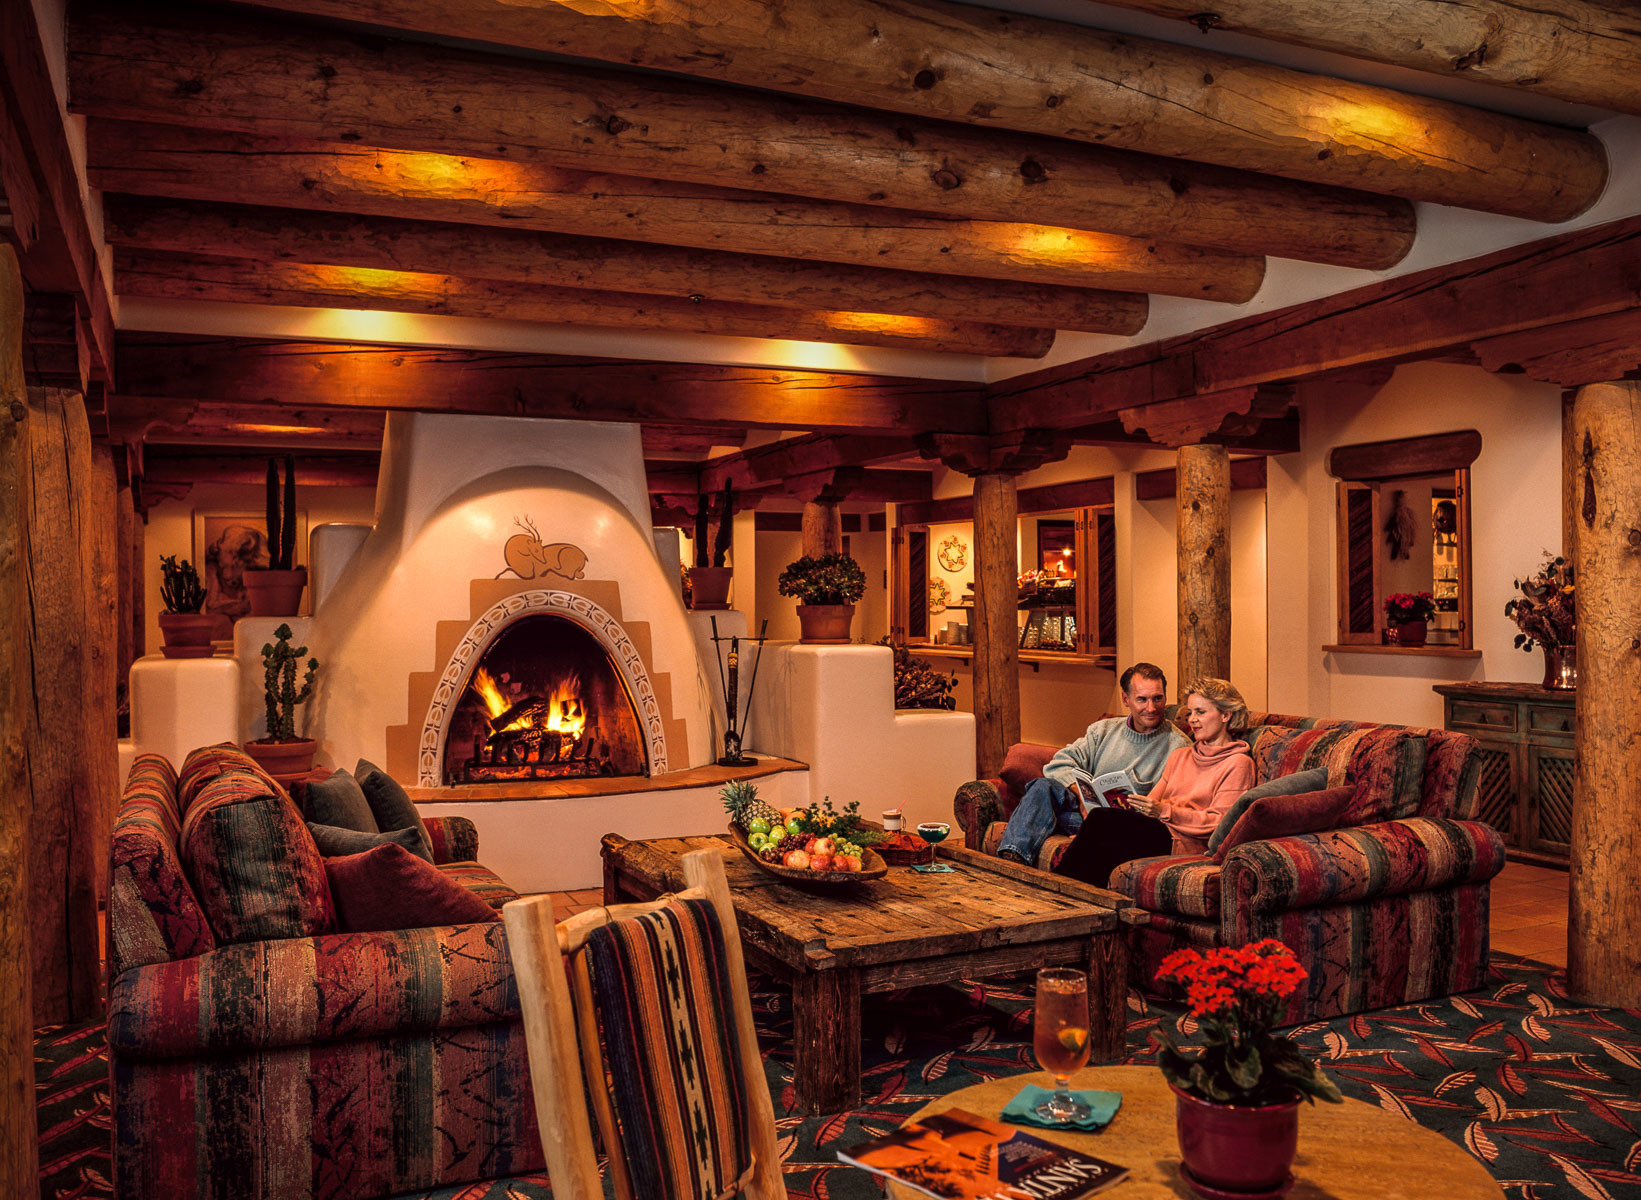 JohnMacLean_HotelSantaFe_Fireplace_Models_PF